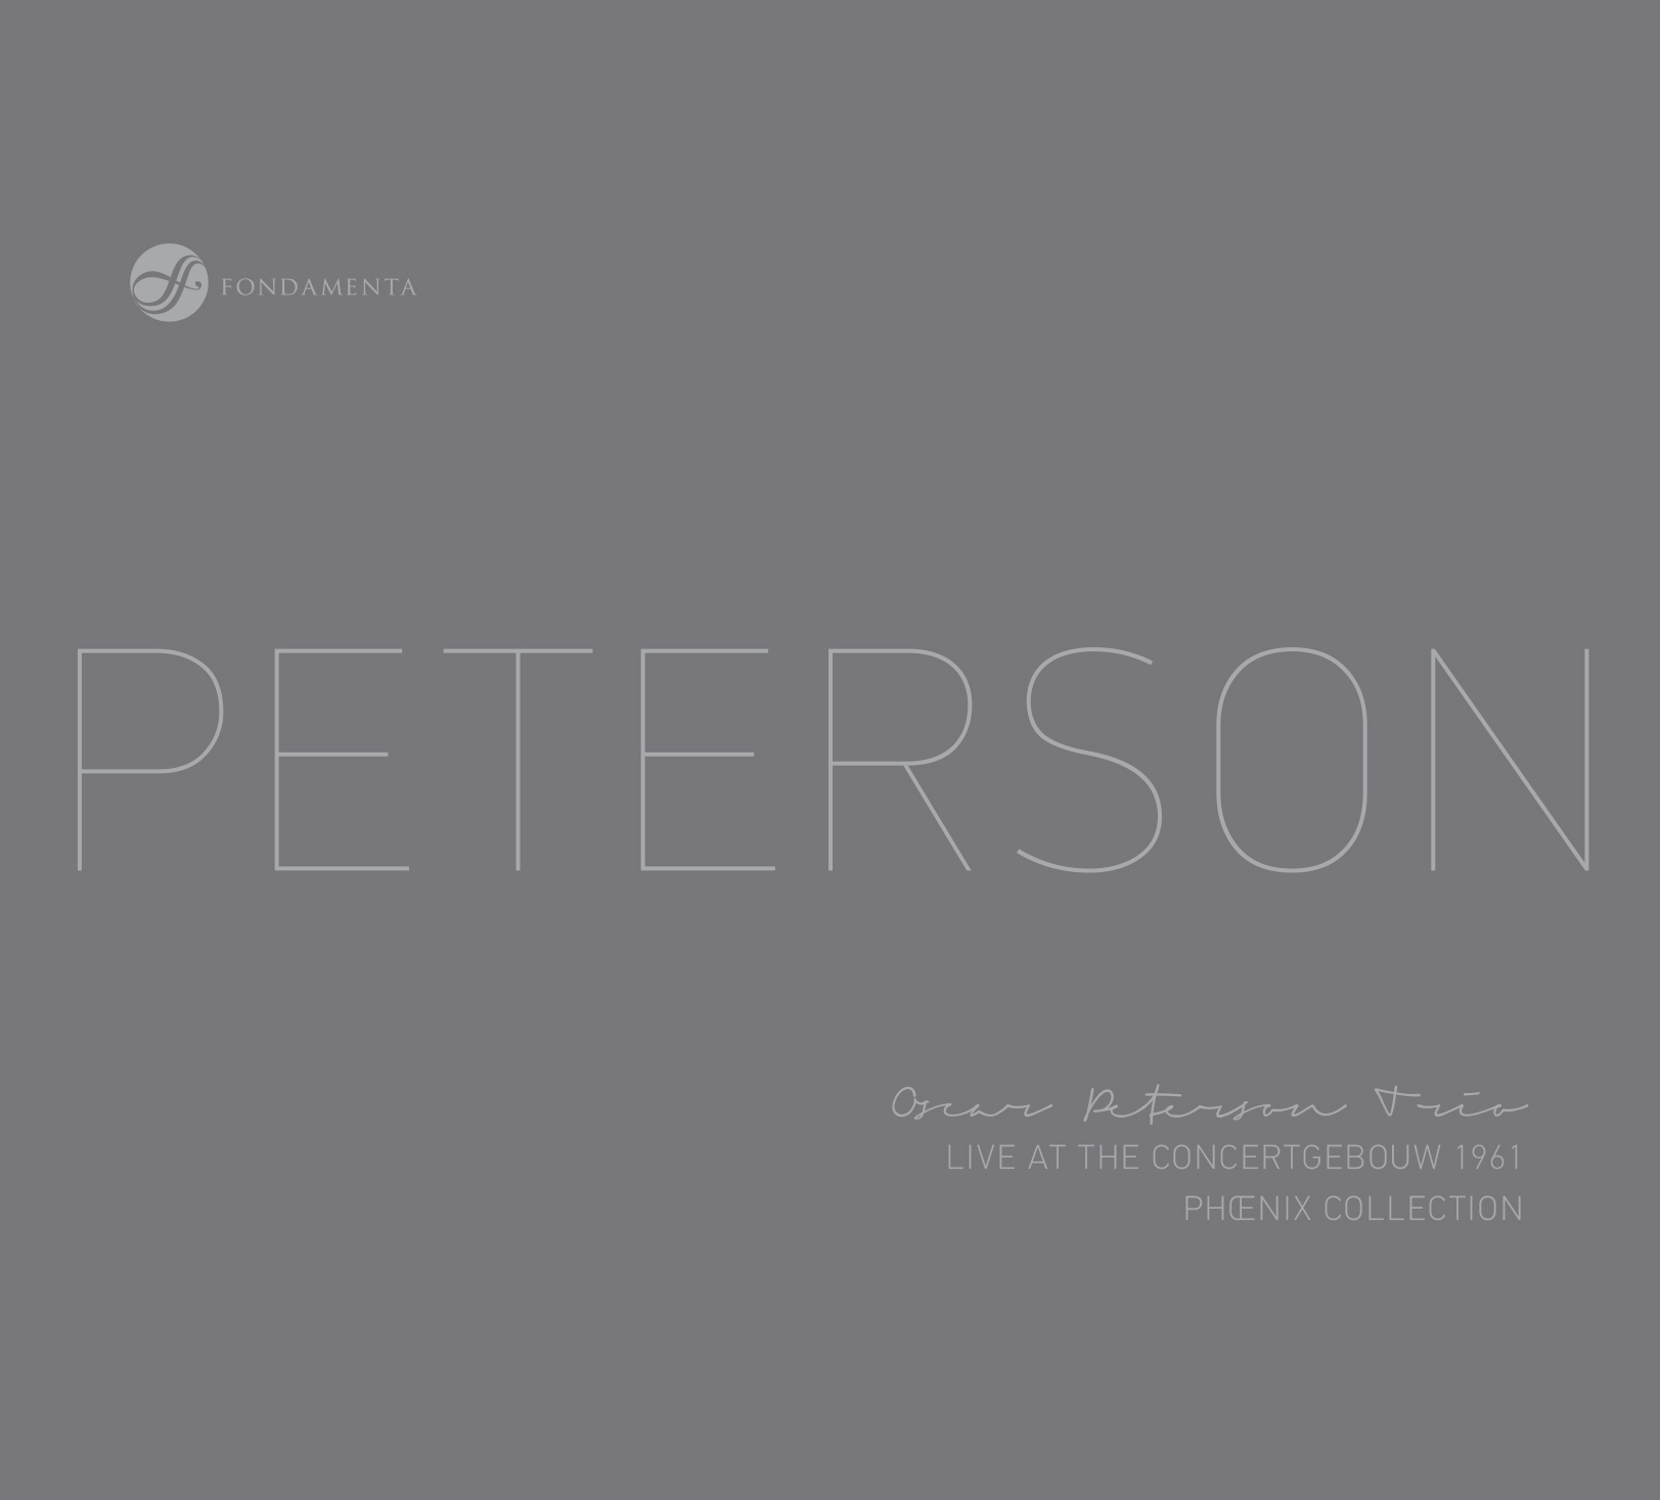 Peterson front